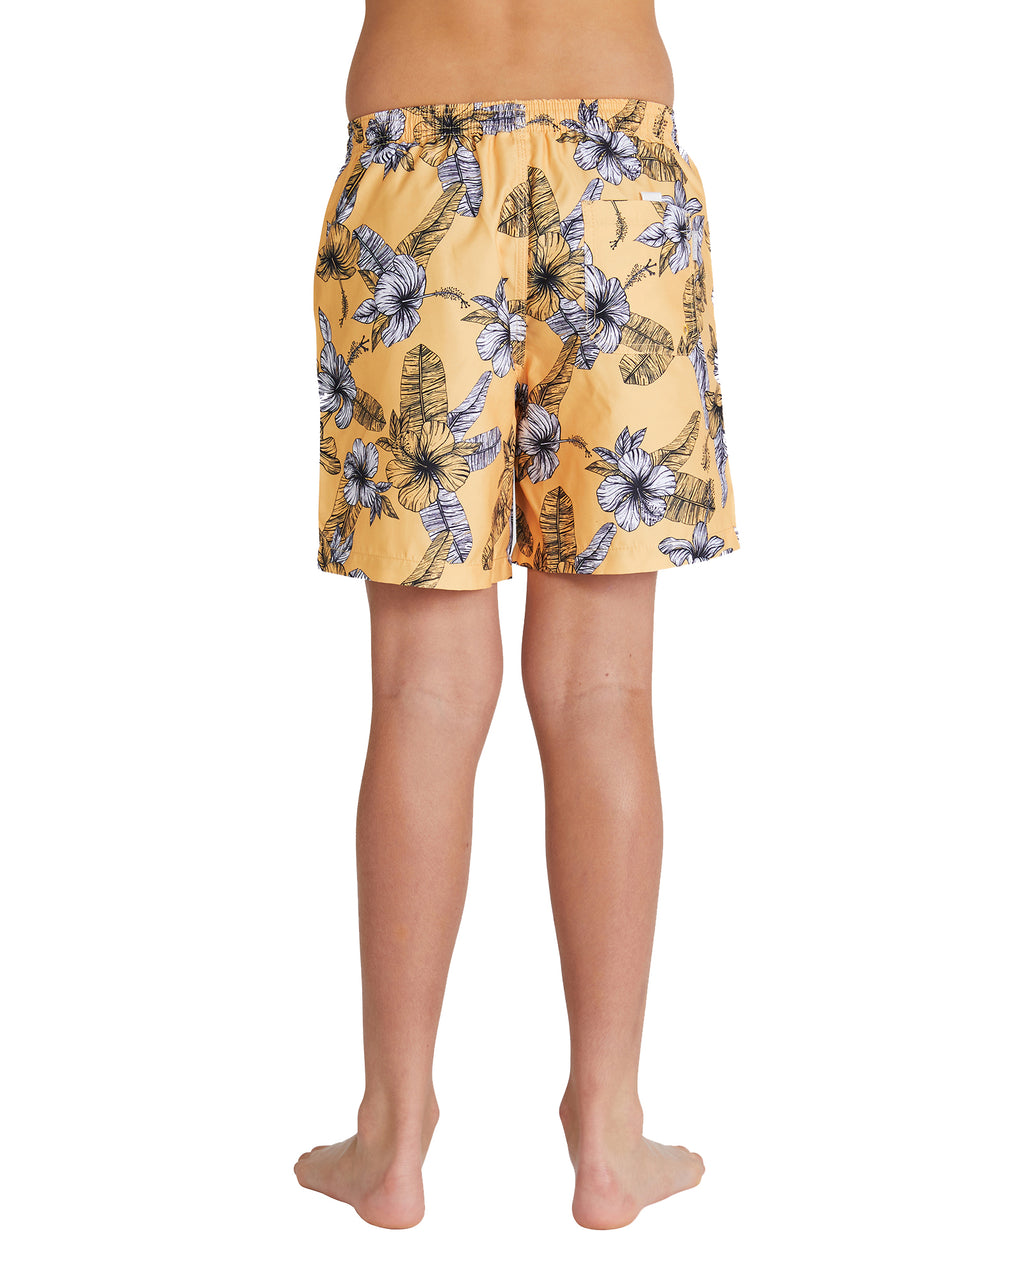 Kids Swim Short - Fern Gully - Mango